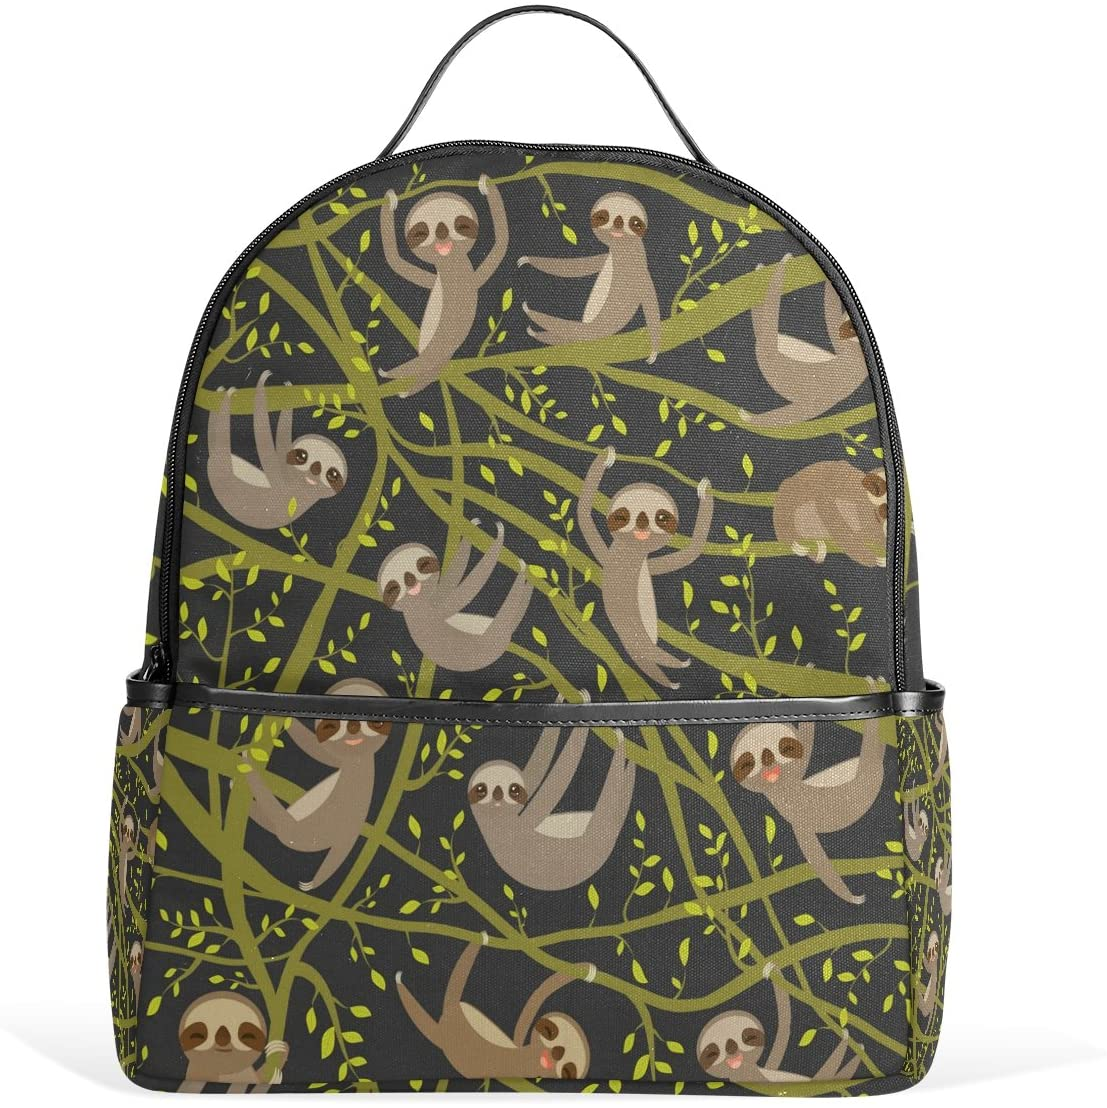 Use4 Hipster Sloth Tree Polyester Backpack School Travel Bag